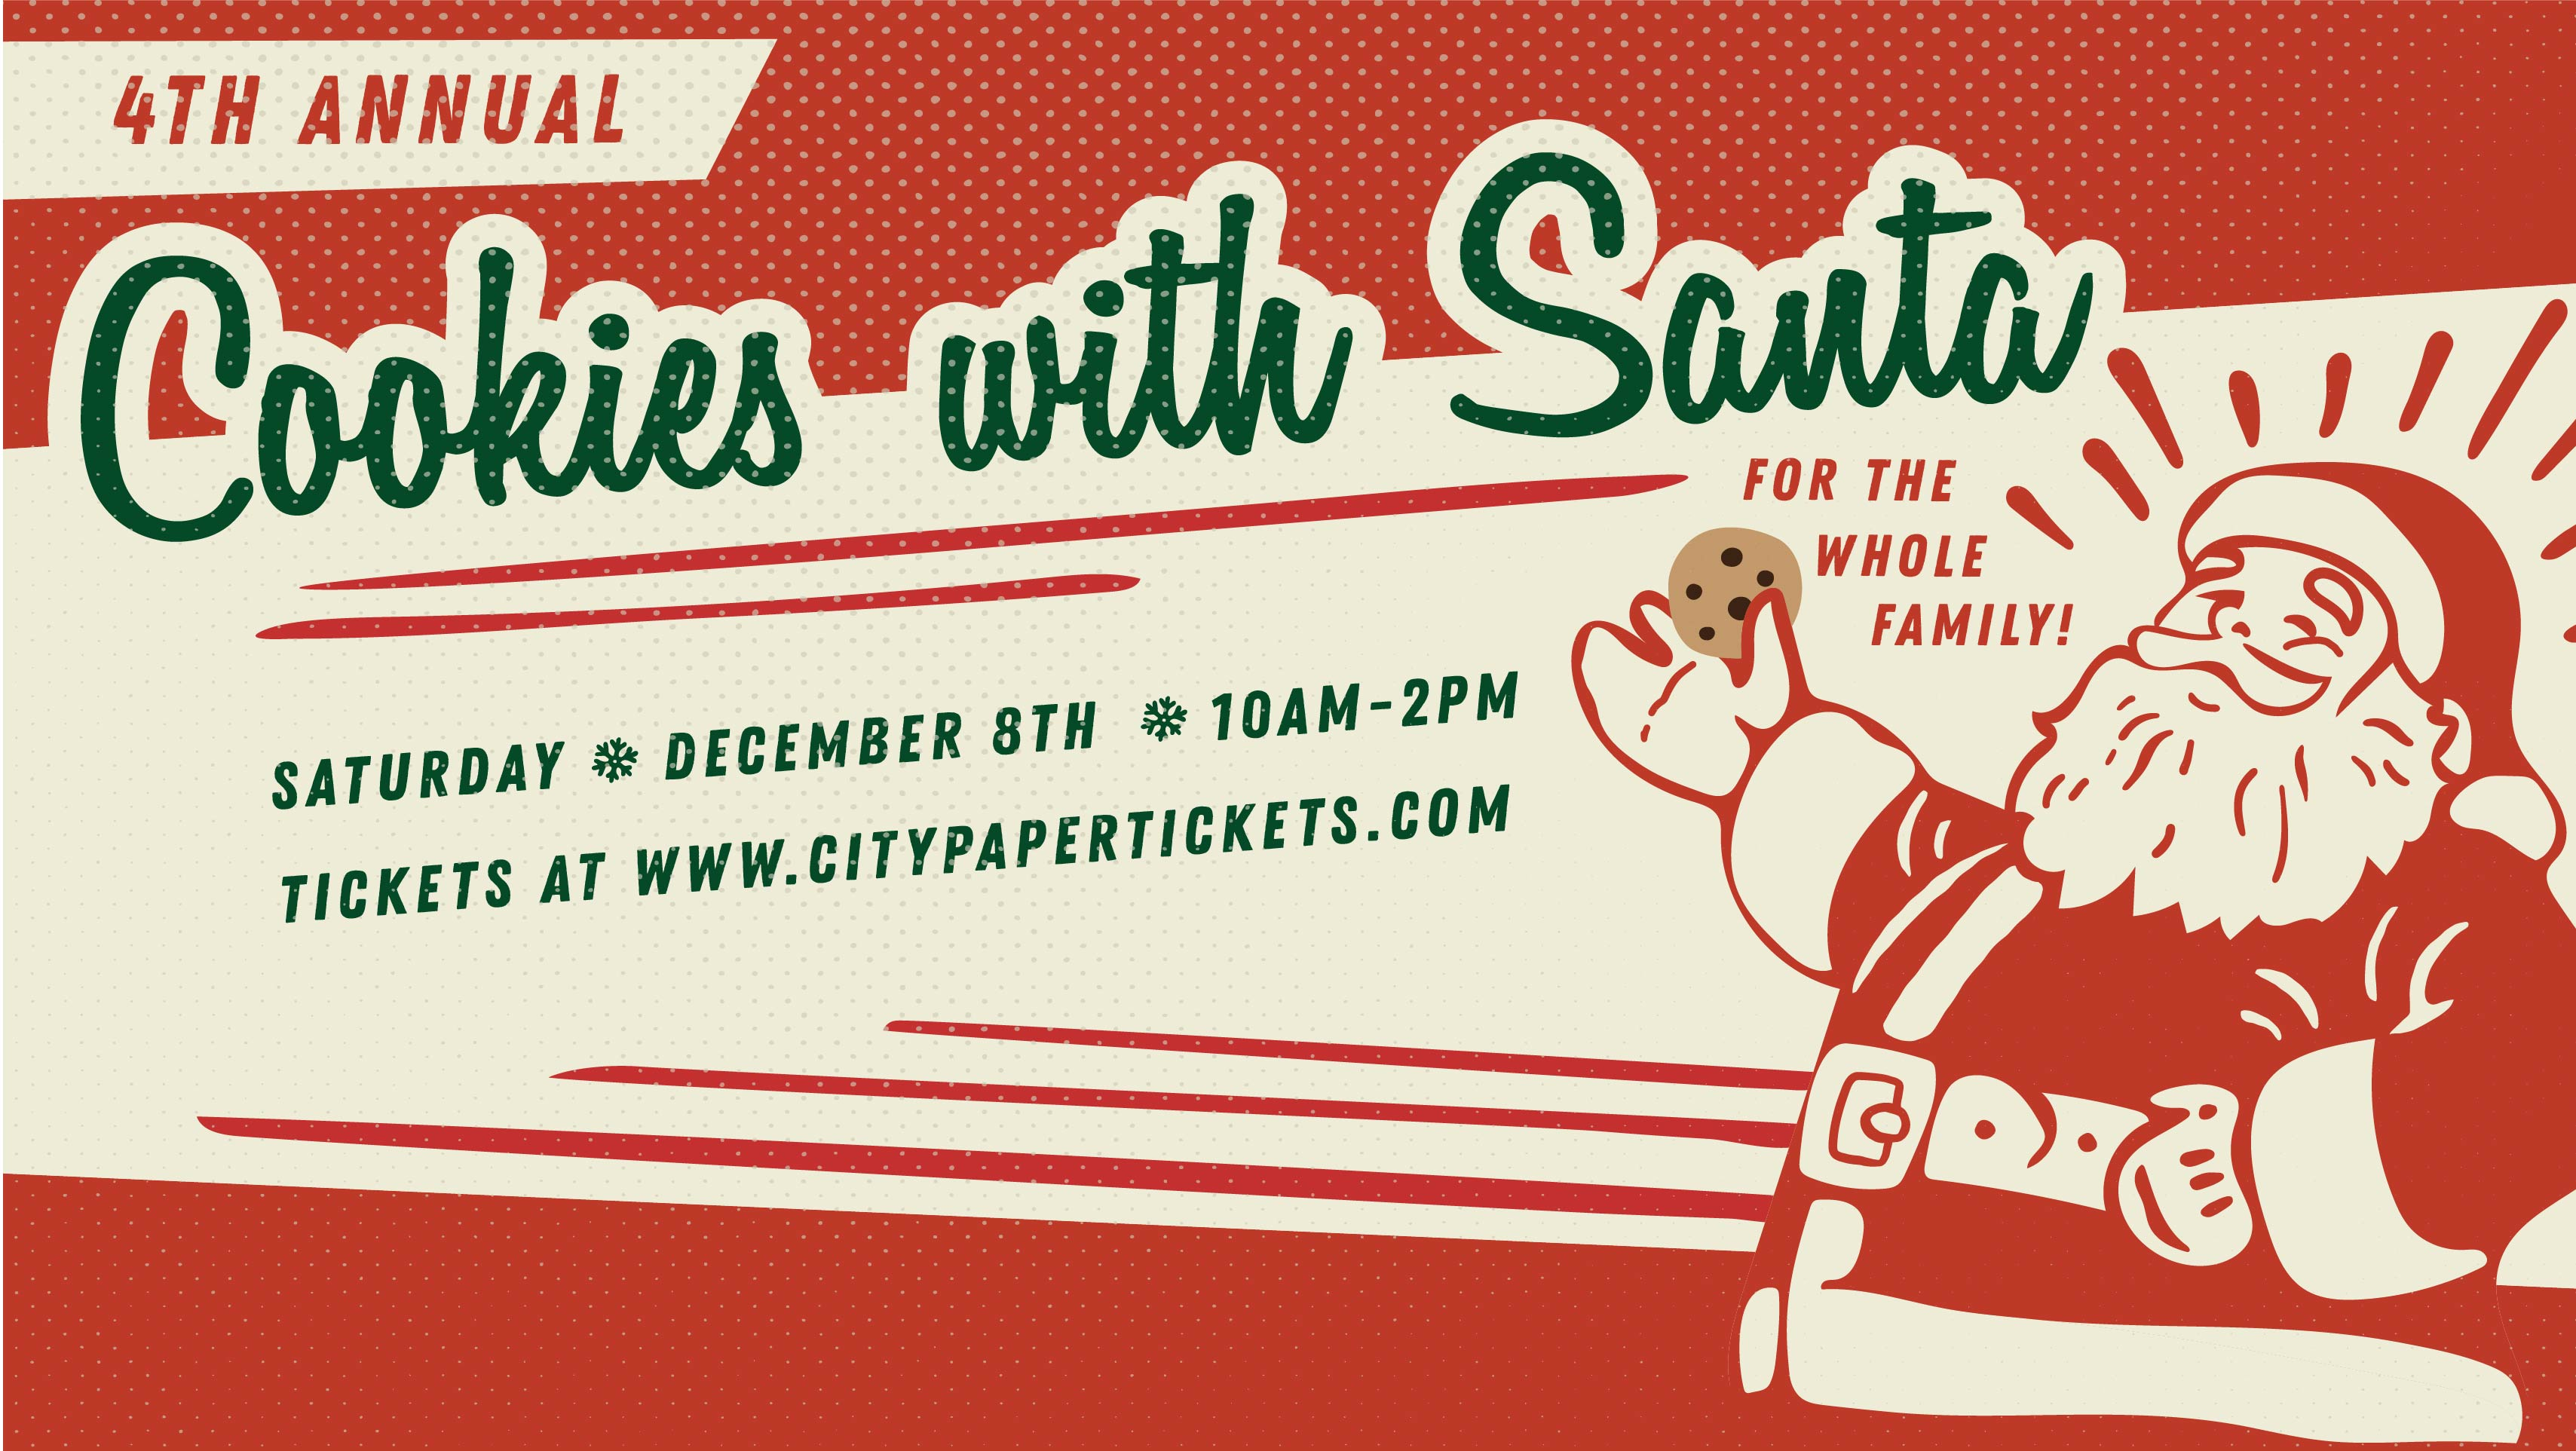 4th Annual Cookies With Santa Tickets Mercantile Mash Charleston Sc Saturday December 8 2018 10am To 2pm Charleston City Paper Tickets